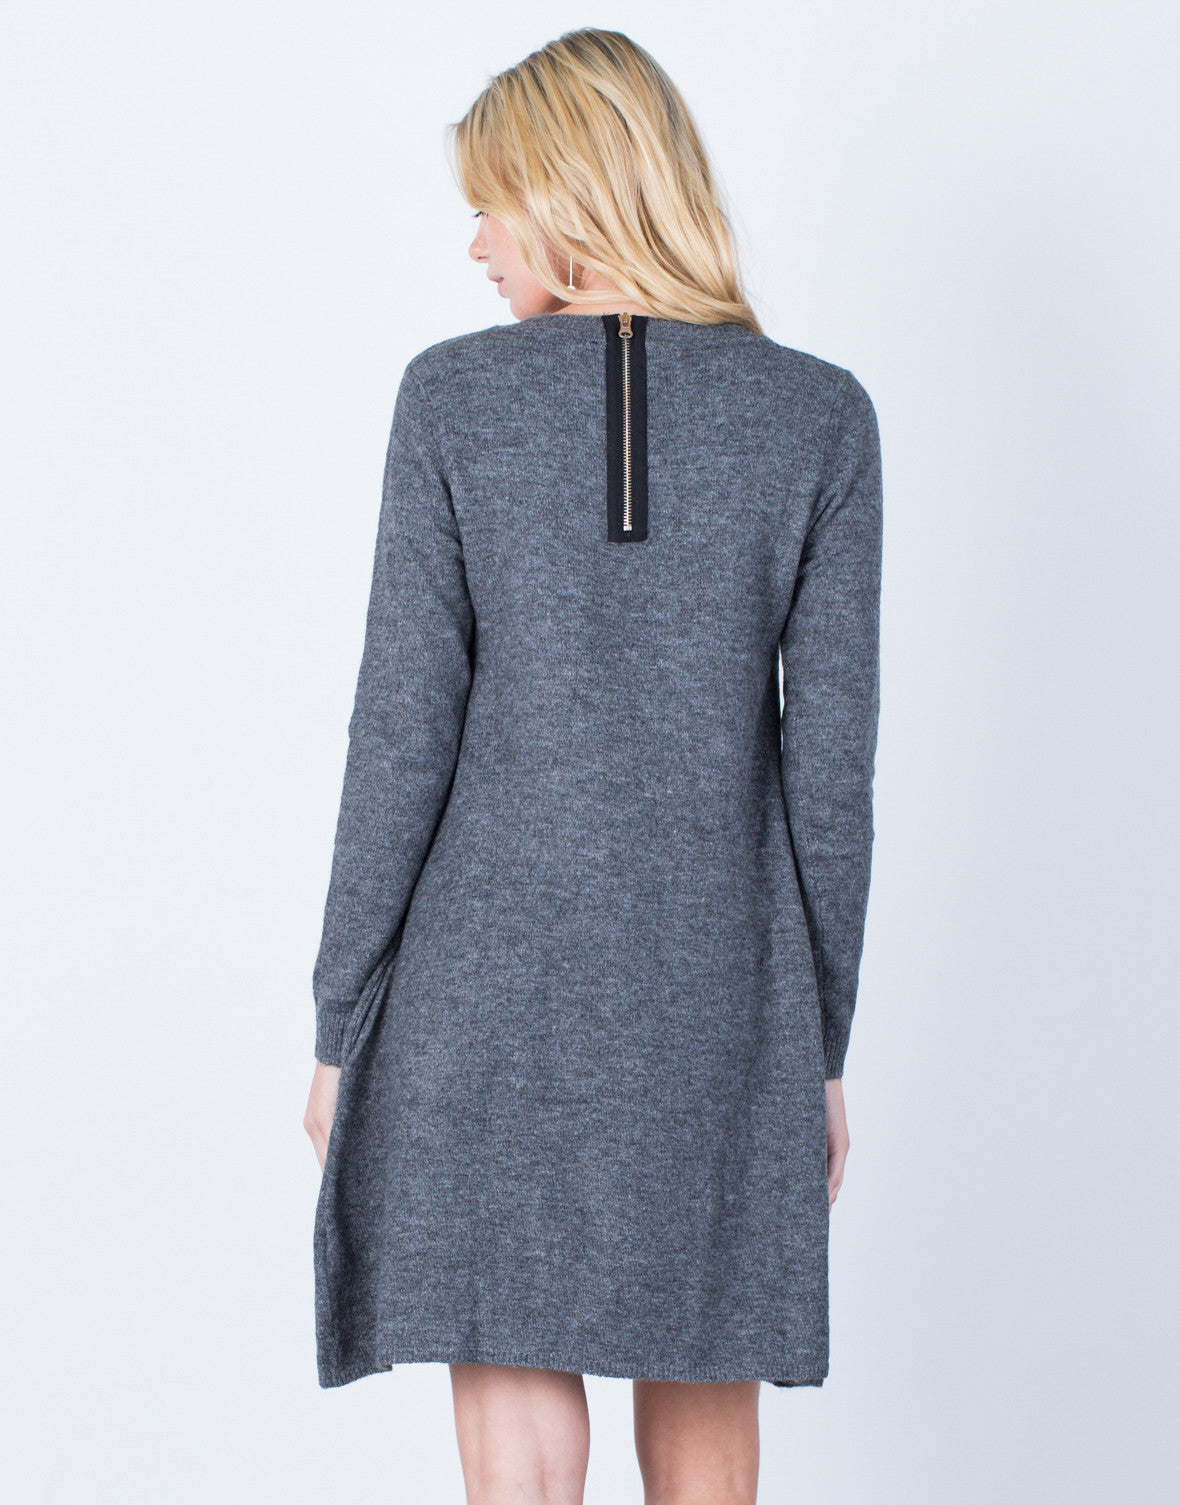 Fall into Comfort Sweater Dress - 2020AVE